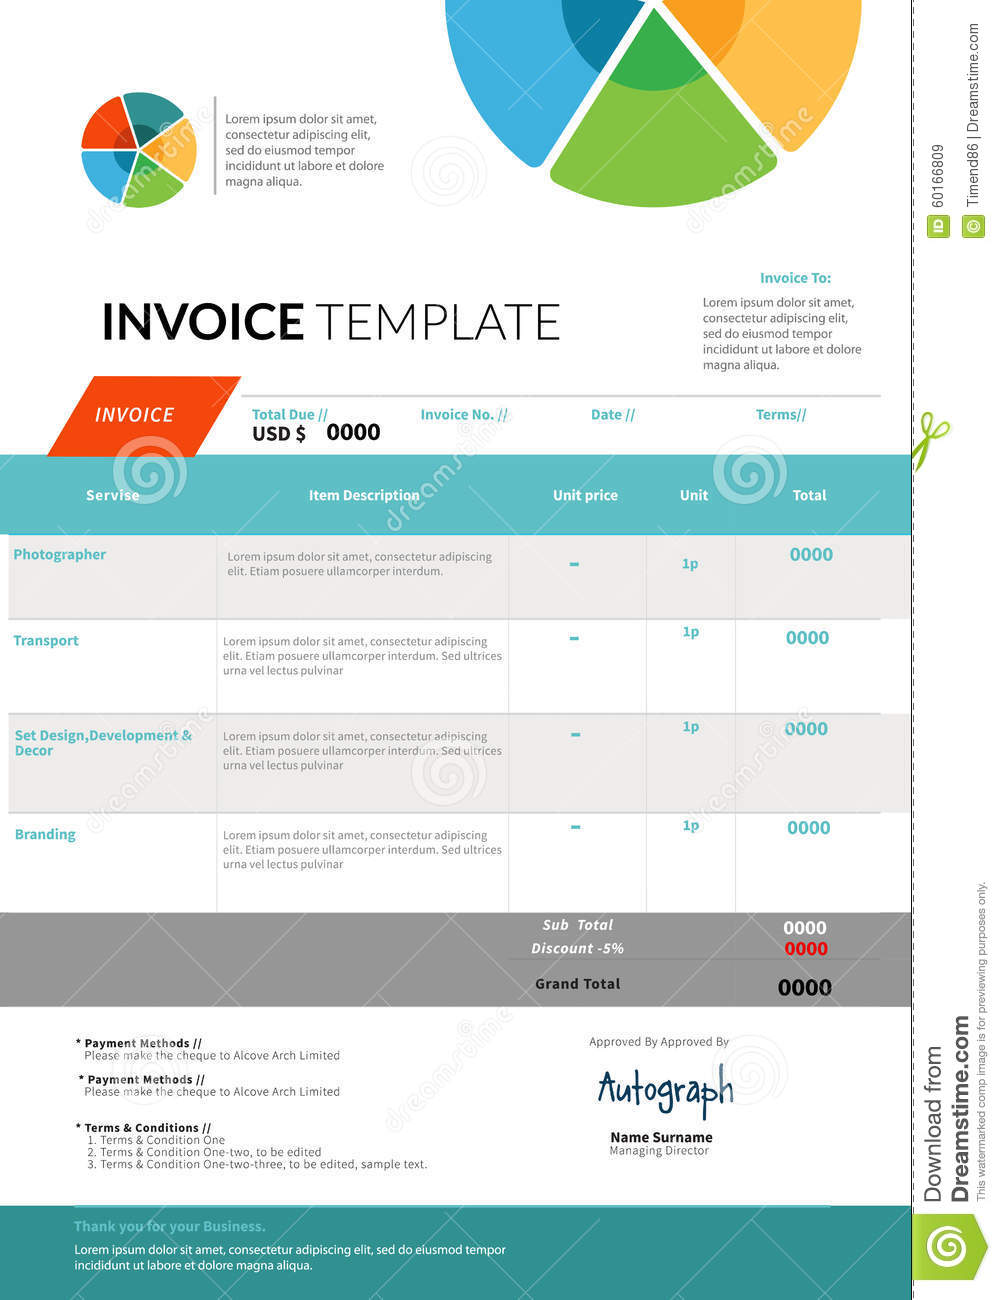 invoice template design stock vector illustration of editable